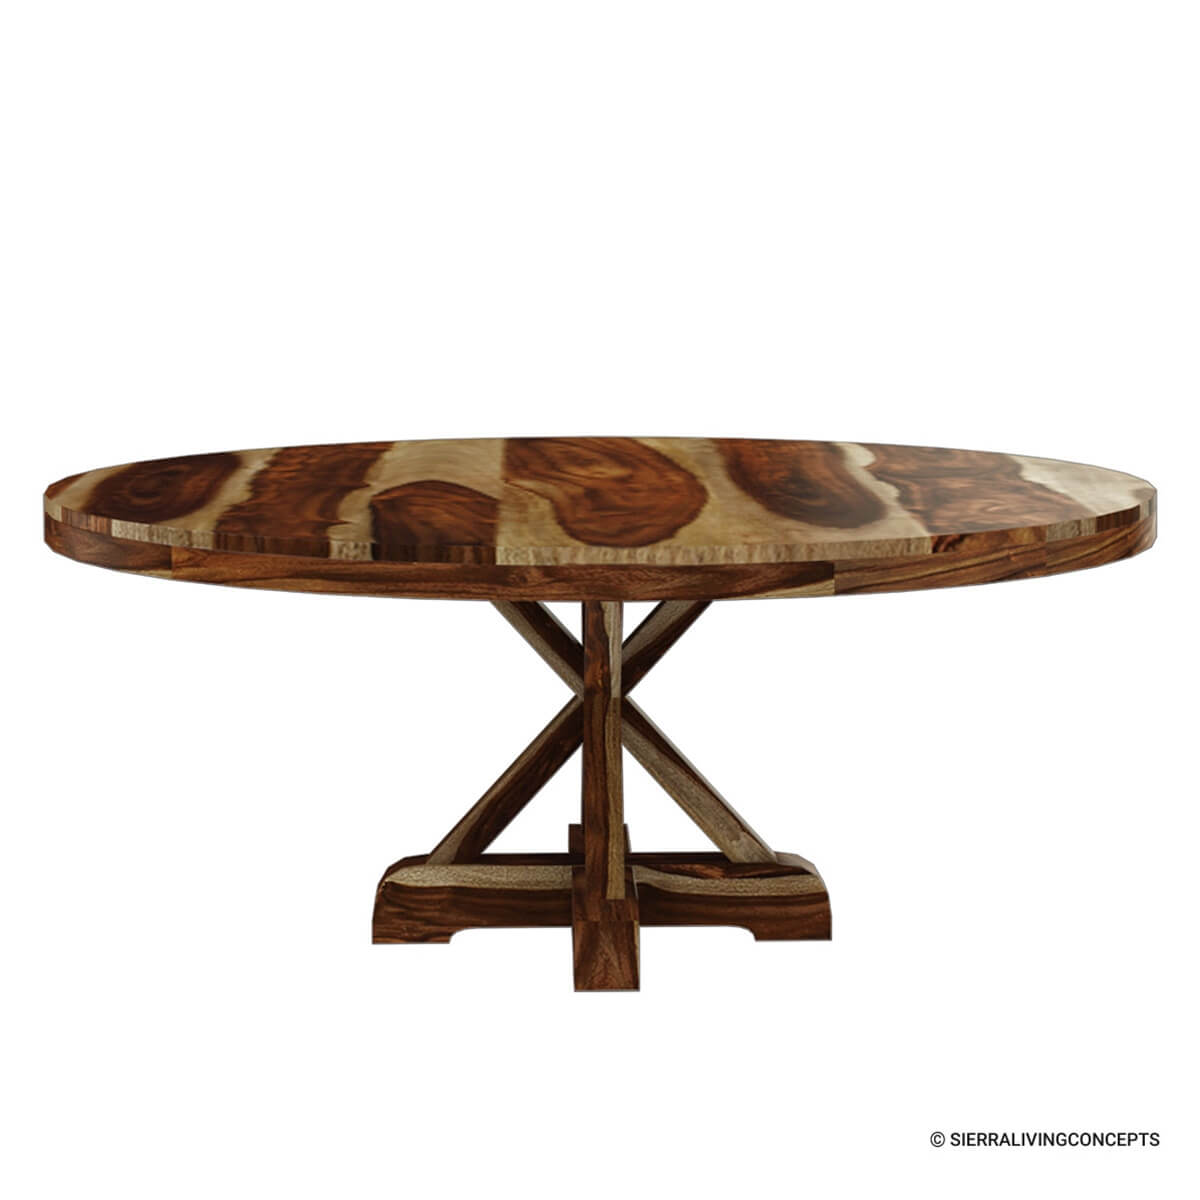 Bedford Rustic Solid Wood 72quot X Pedestal Round Dining Table : 69093 from www.sierralivingconcepts.com size 1200 x 1200 jpeg 82kB